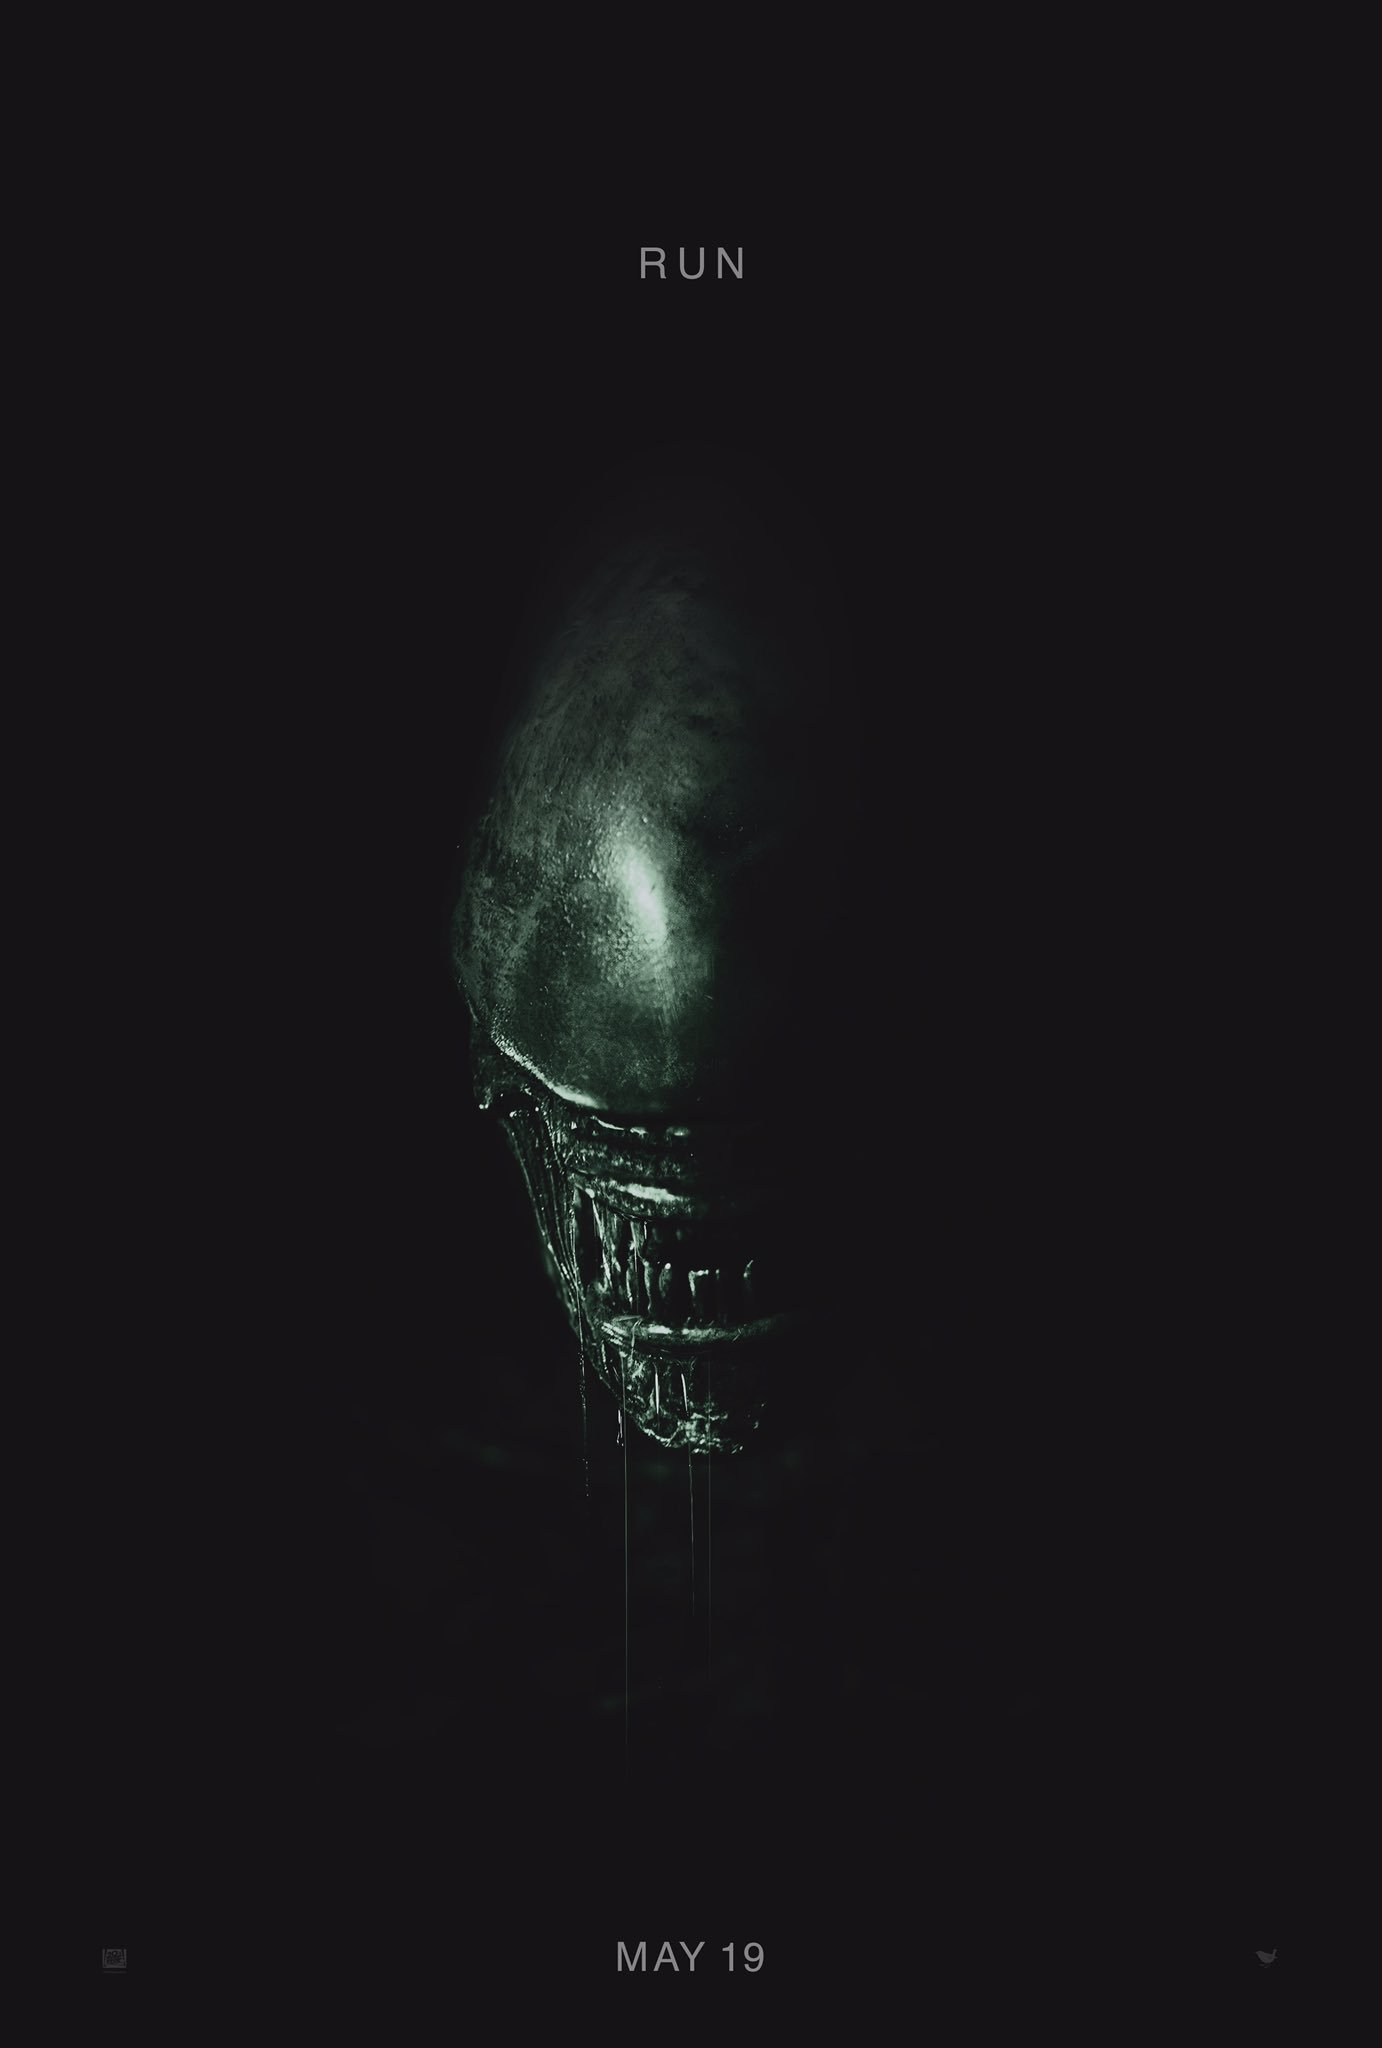 'Alien: Covenant' Poster